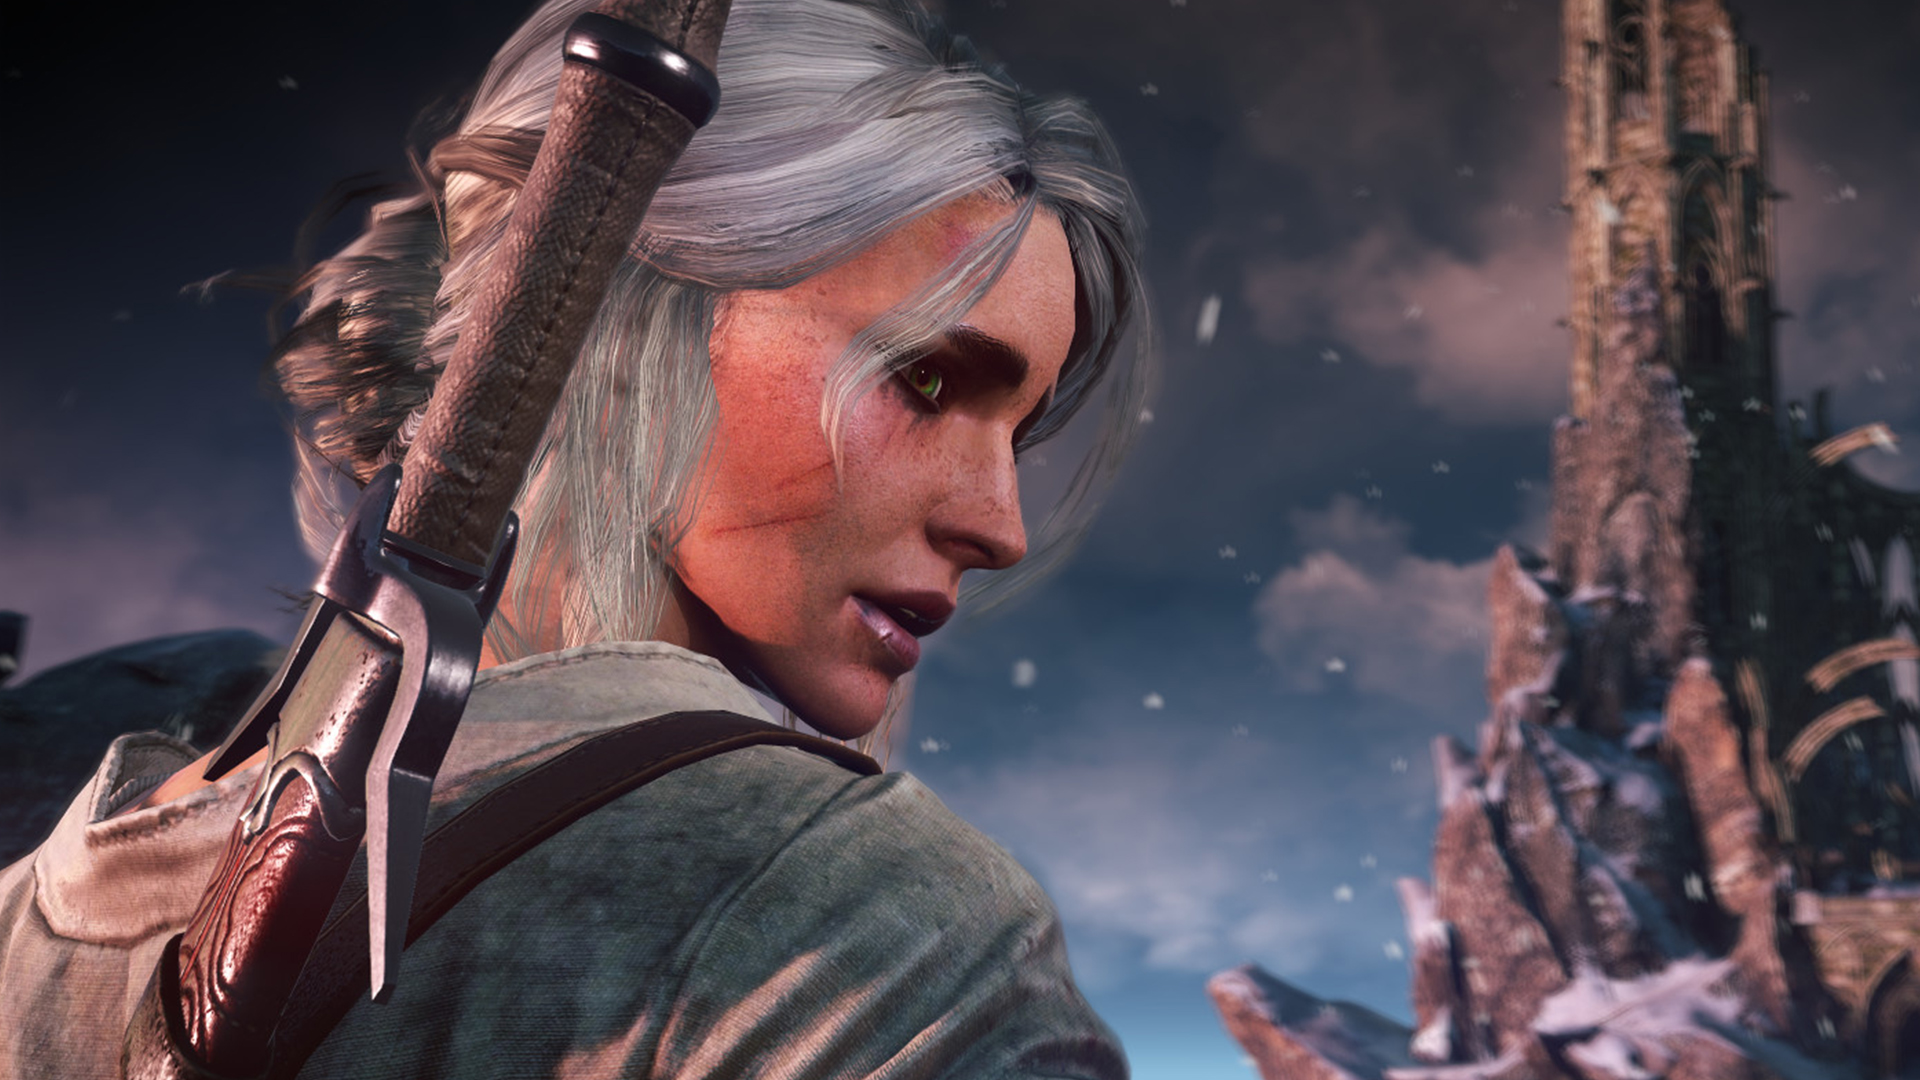 A Rumoured Casting Call Has Some Members Of The Witcher Fandom Freaking Out